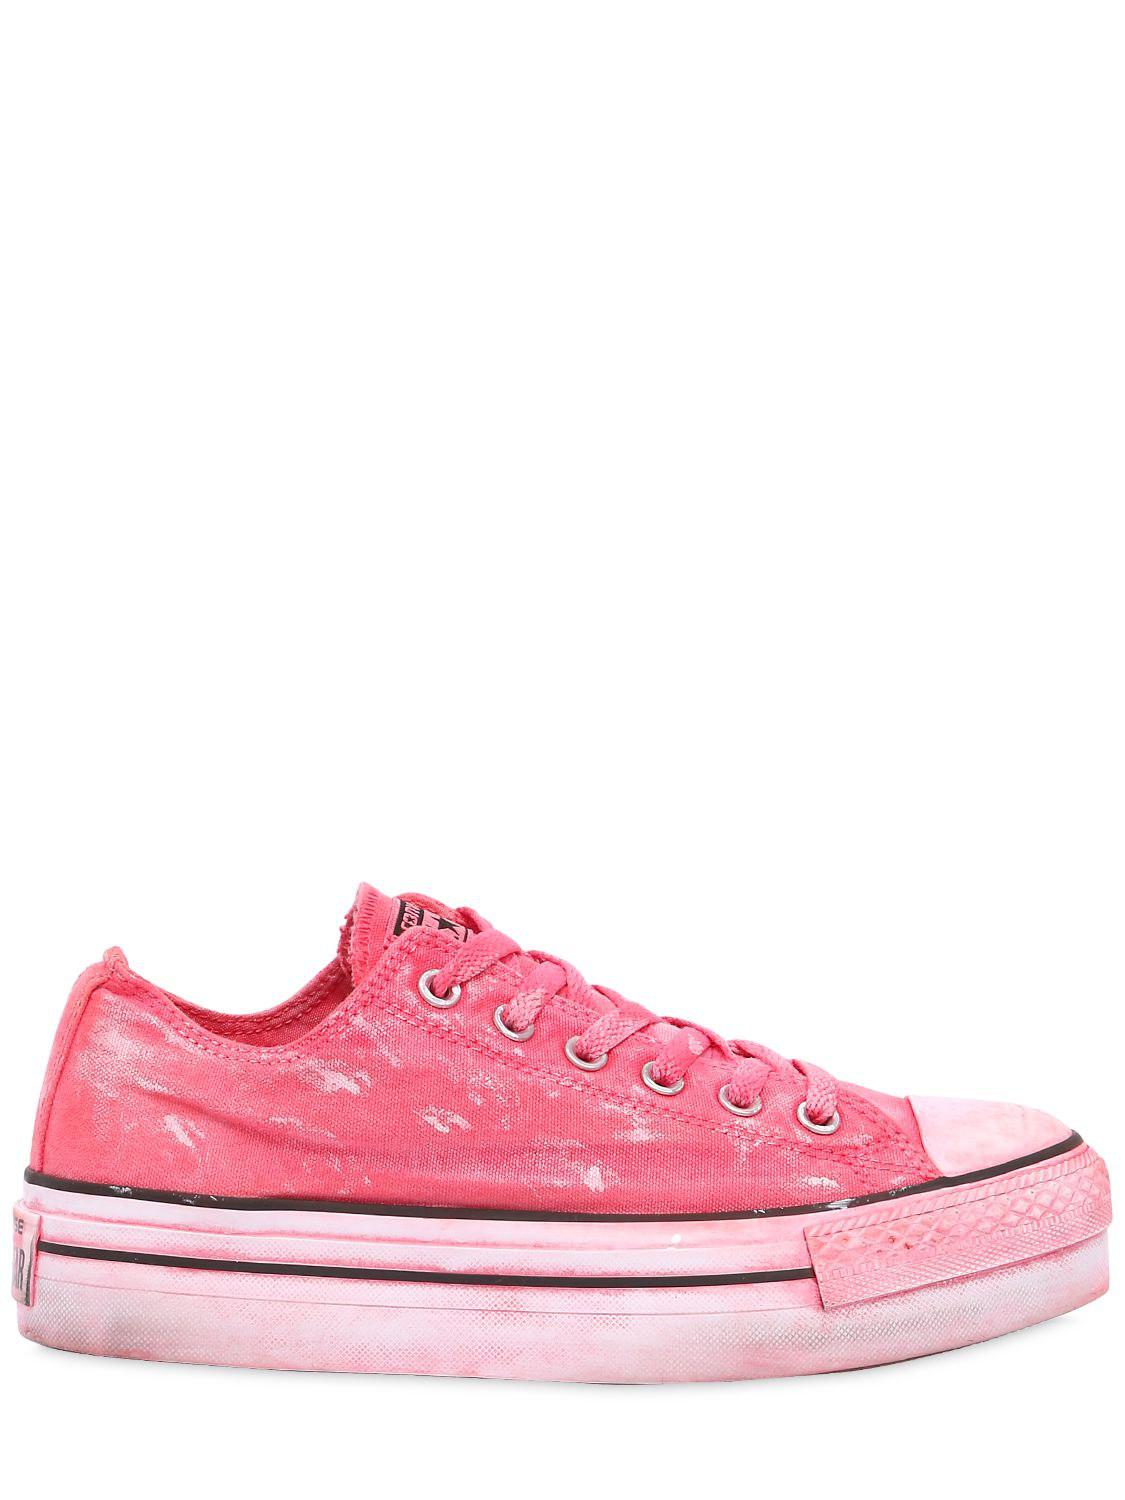 Converse 40mm Chuck Taylor Platform Sneakers in Pink - Lyst 7481d6936